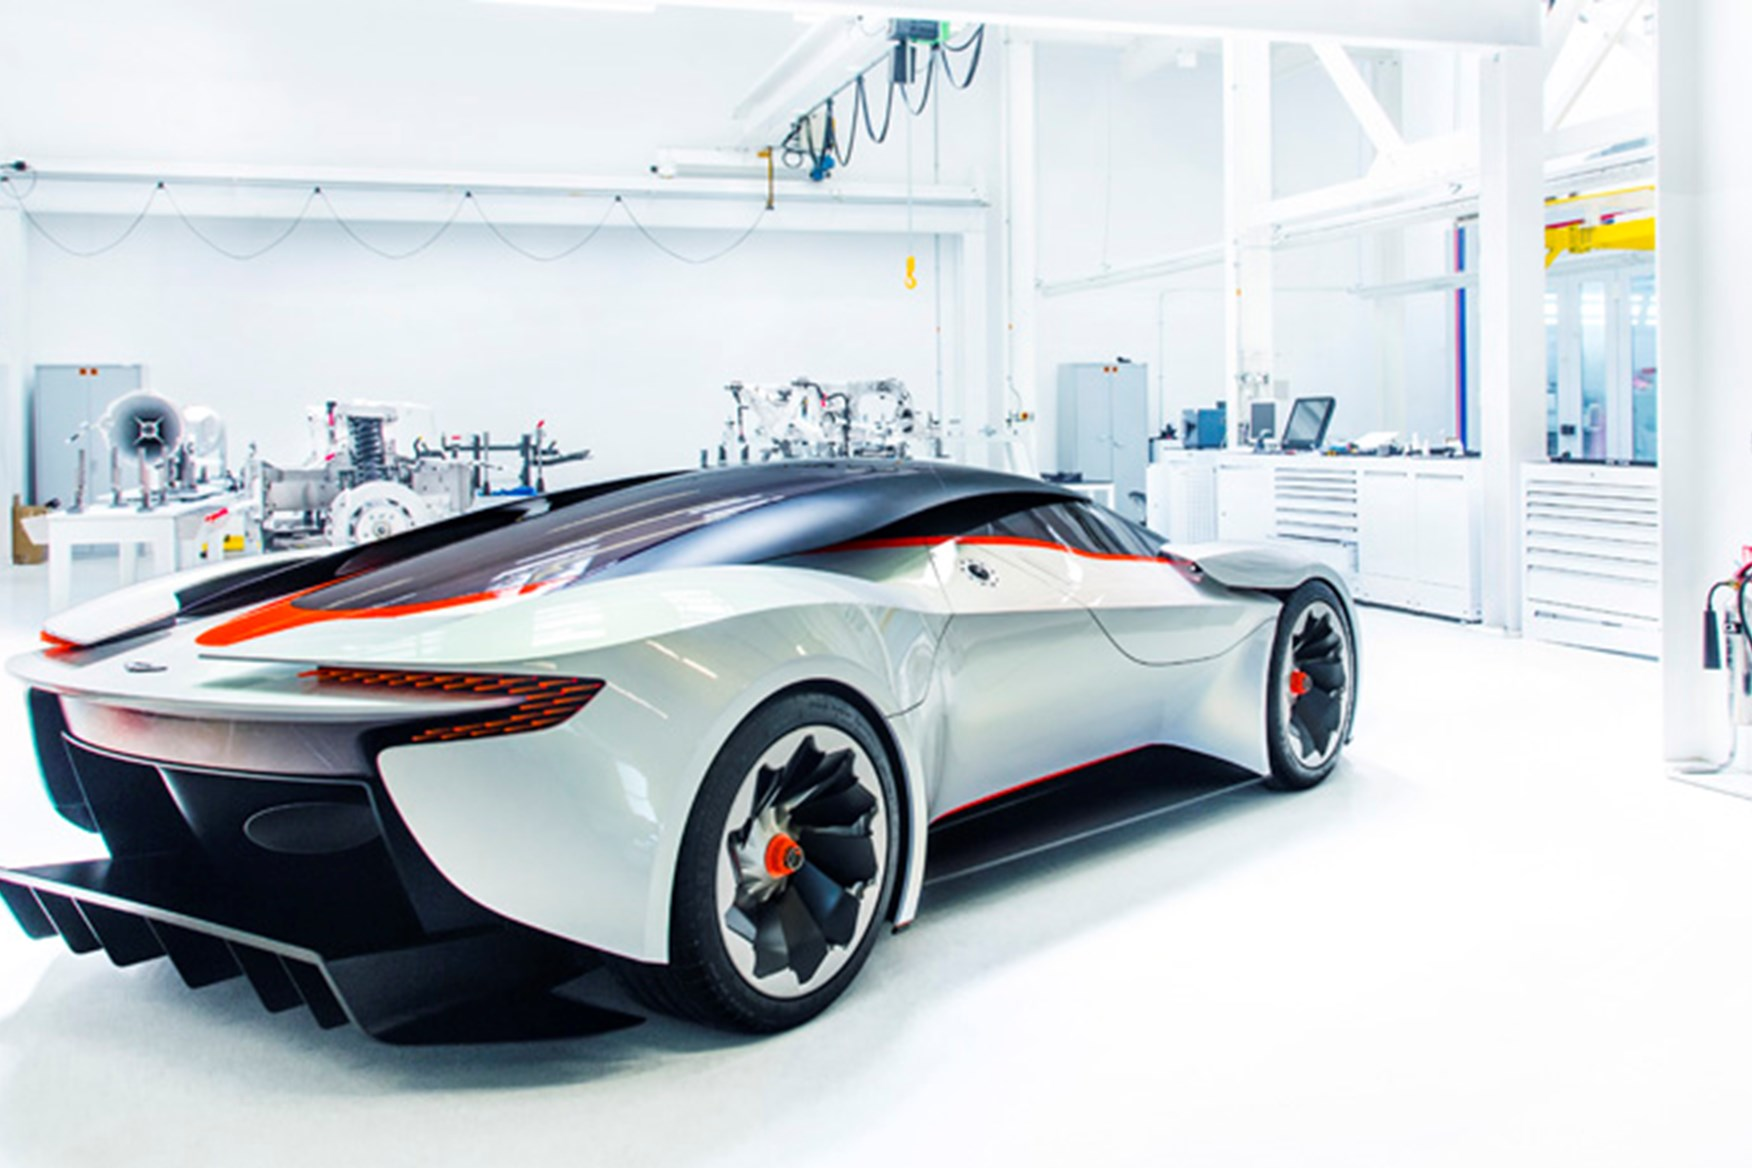 Seven Things We Learned About The Aston Martin Dp 100 Concept Car